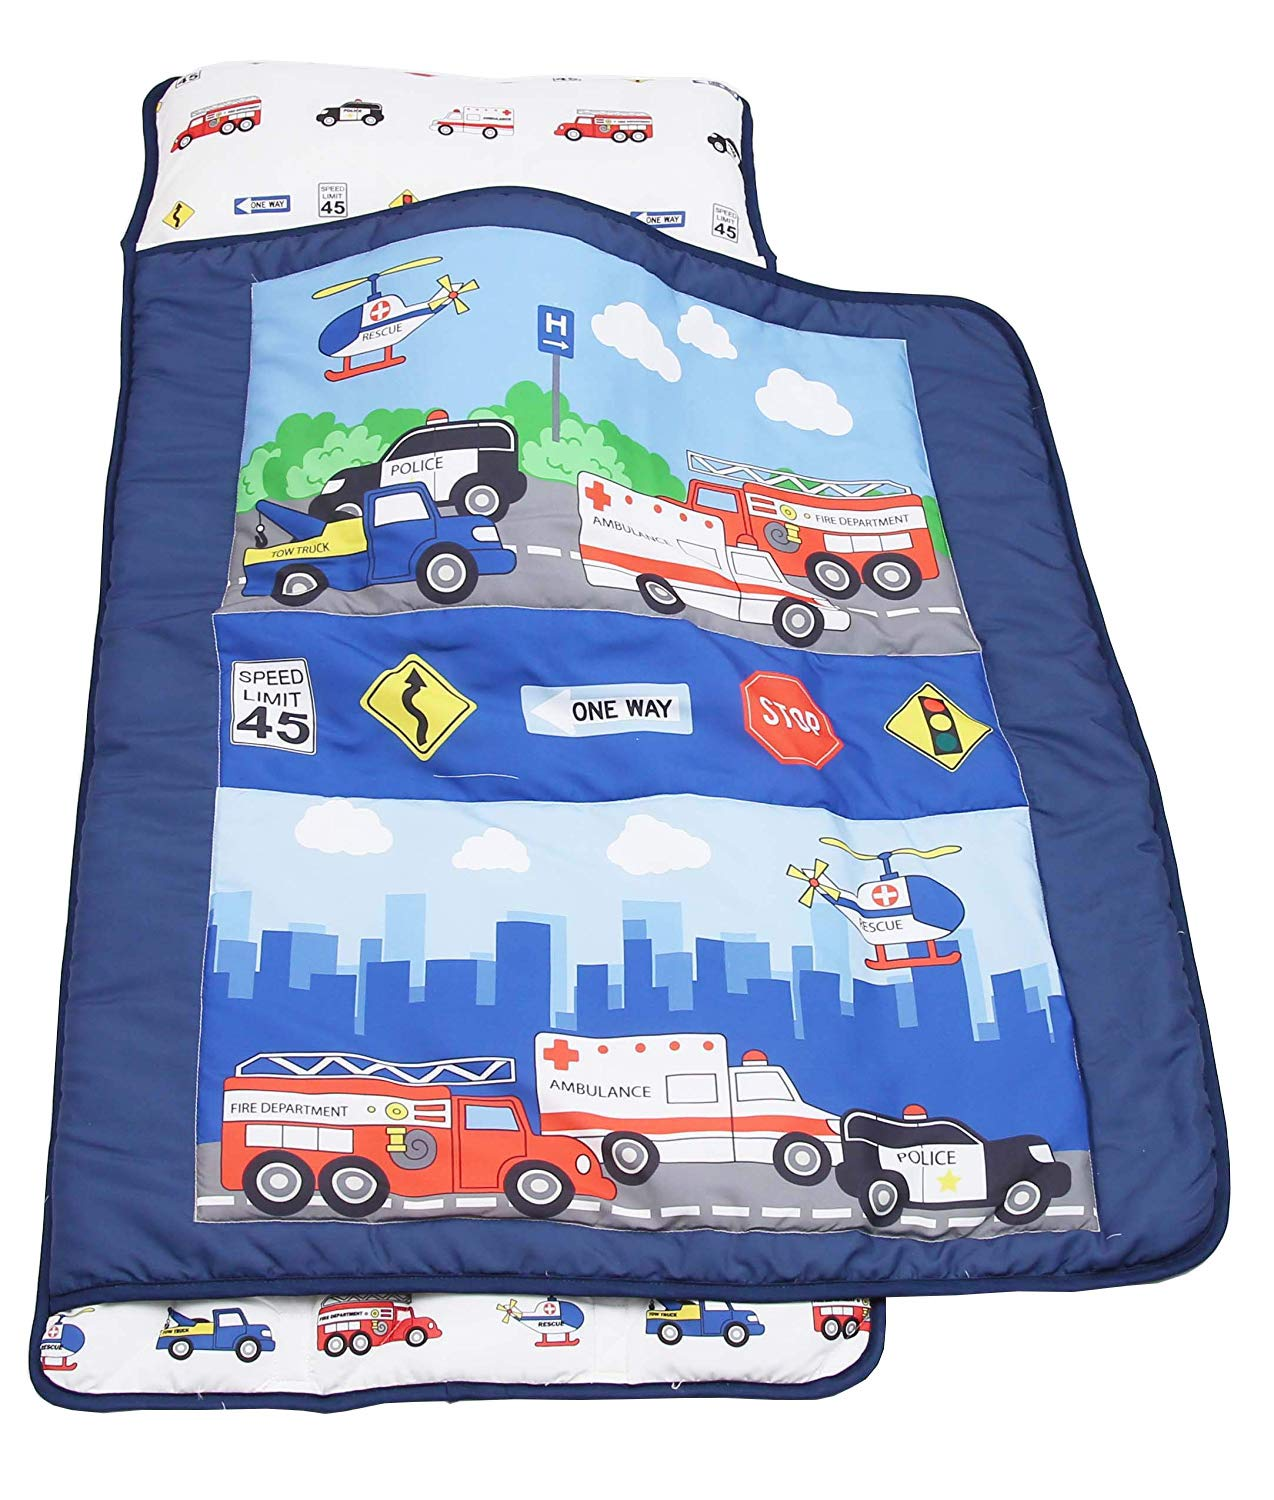 Everyday Kids Toddler Nap Mat with Removable Pillow -Fire Police Rescue- Carry Handle with Velcro Strap Closure, Rollup Design, Soft Microfiber for Preschool, Daycare, Kindergarten Sleeping Bag by Everyday